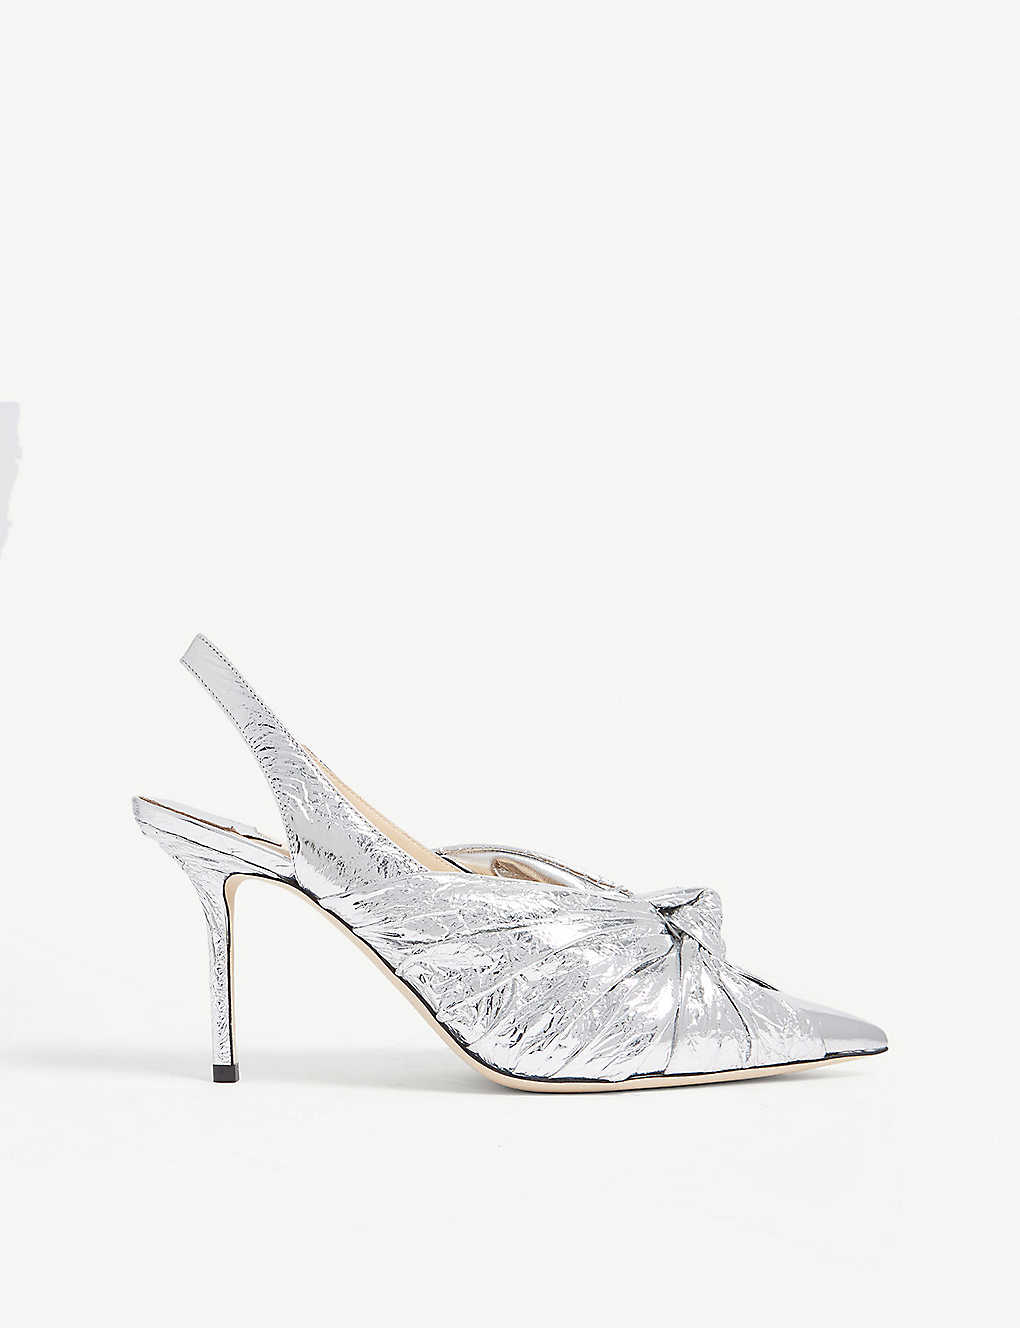 1cd949b44 JIMMY CHOO - Annabell 85 metallic leather slingback pumps ...